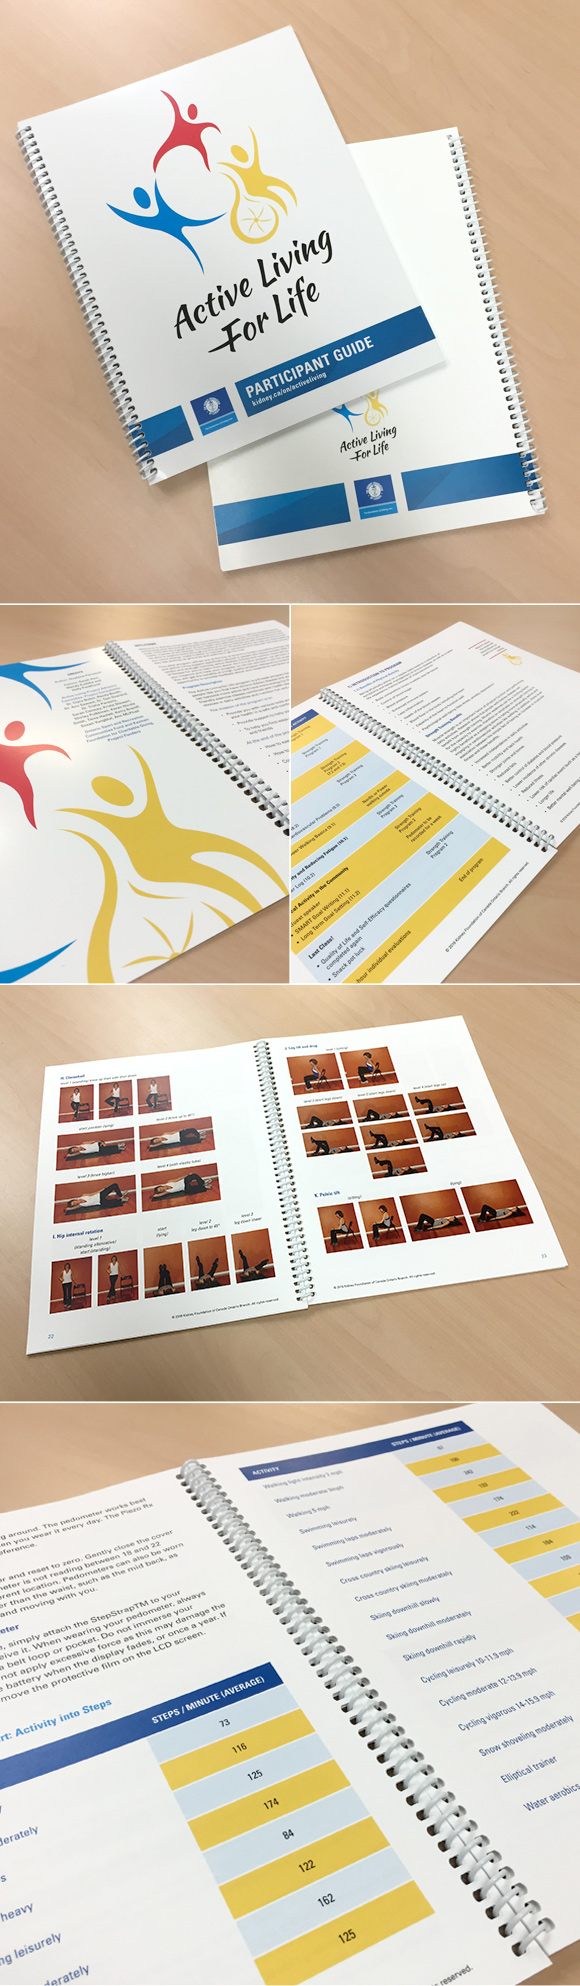 Not-for-profit brand development: Active Living for Life participant guide